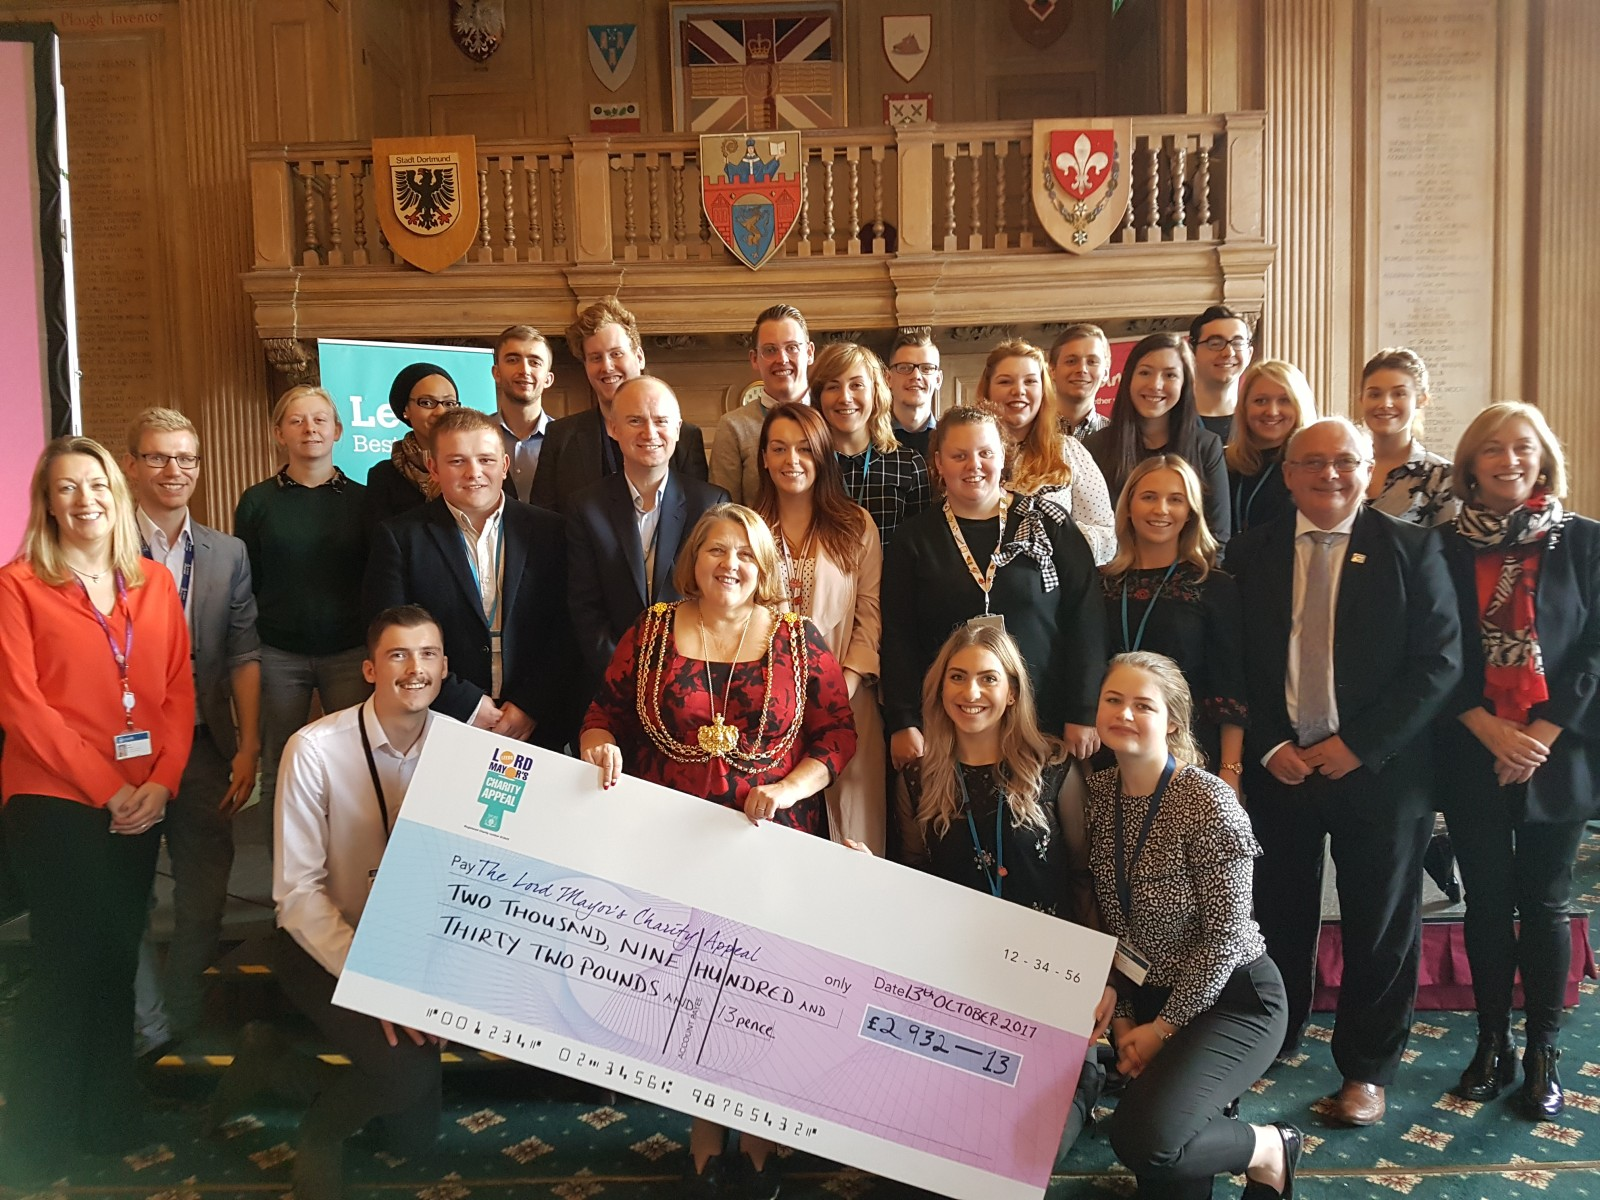 Lord Mayor's Charity Appeal